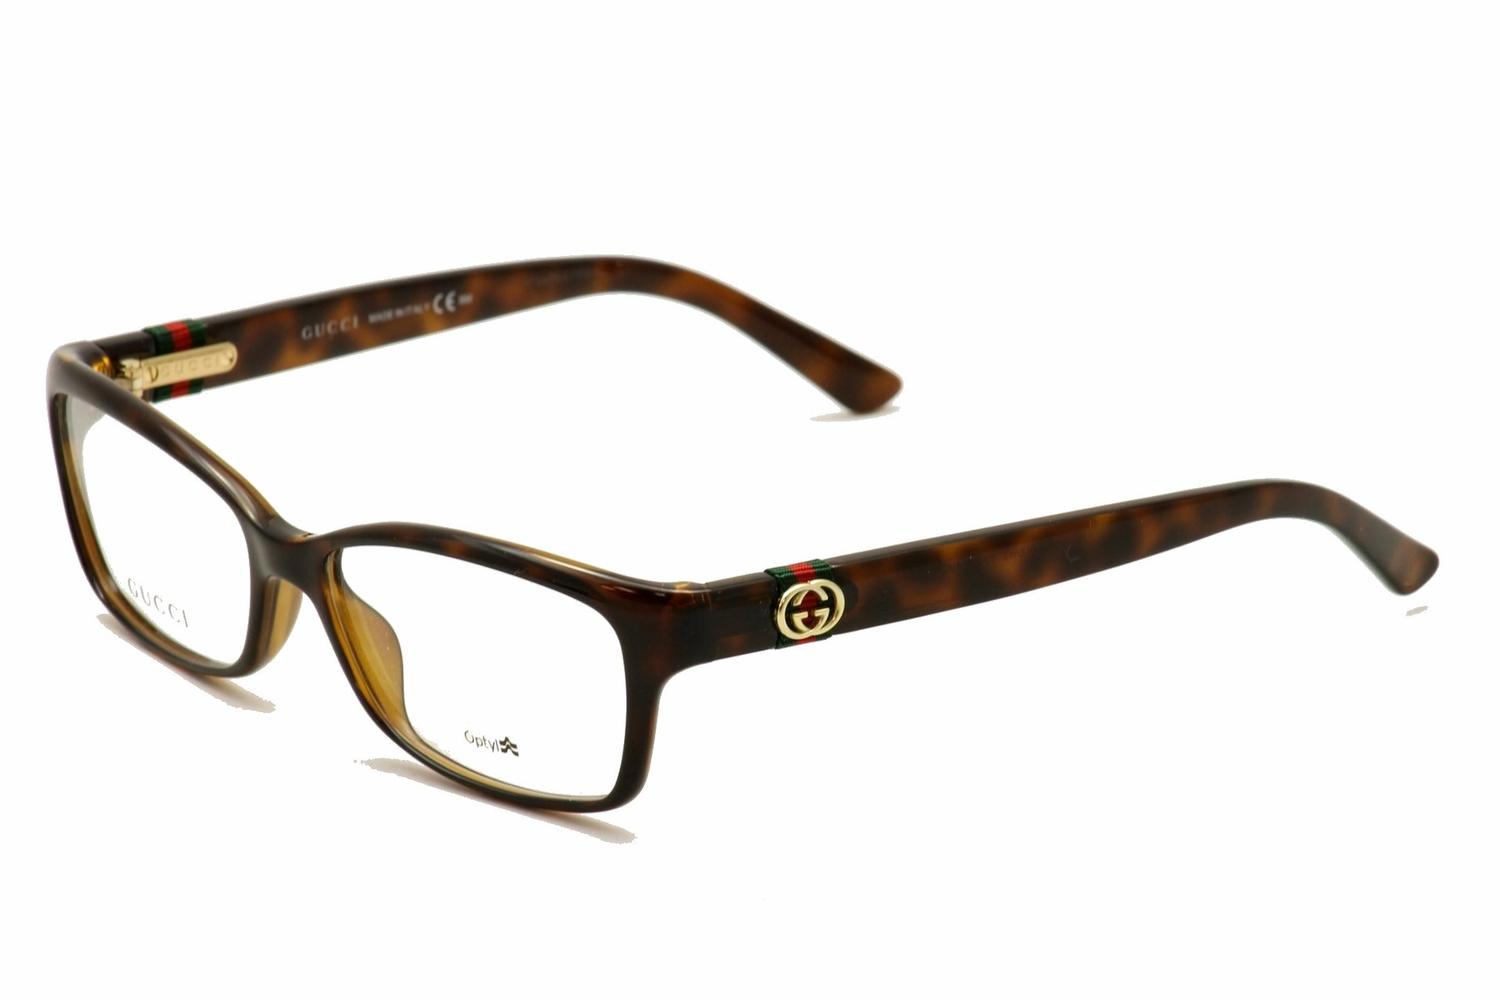 Gucci Ladies Eyeglass Frames : Joylot.com Gucci Womens Eyeglasses 3647 Full Rim Optical ...